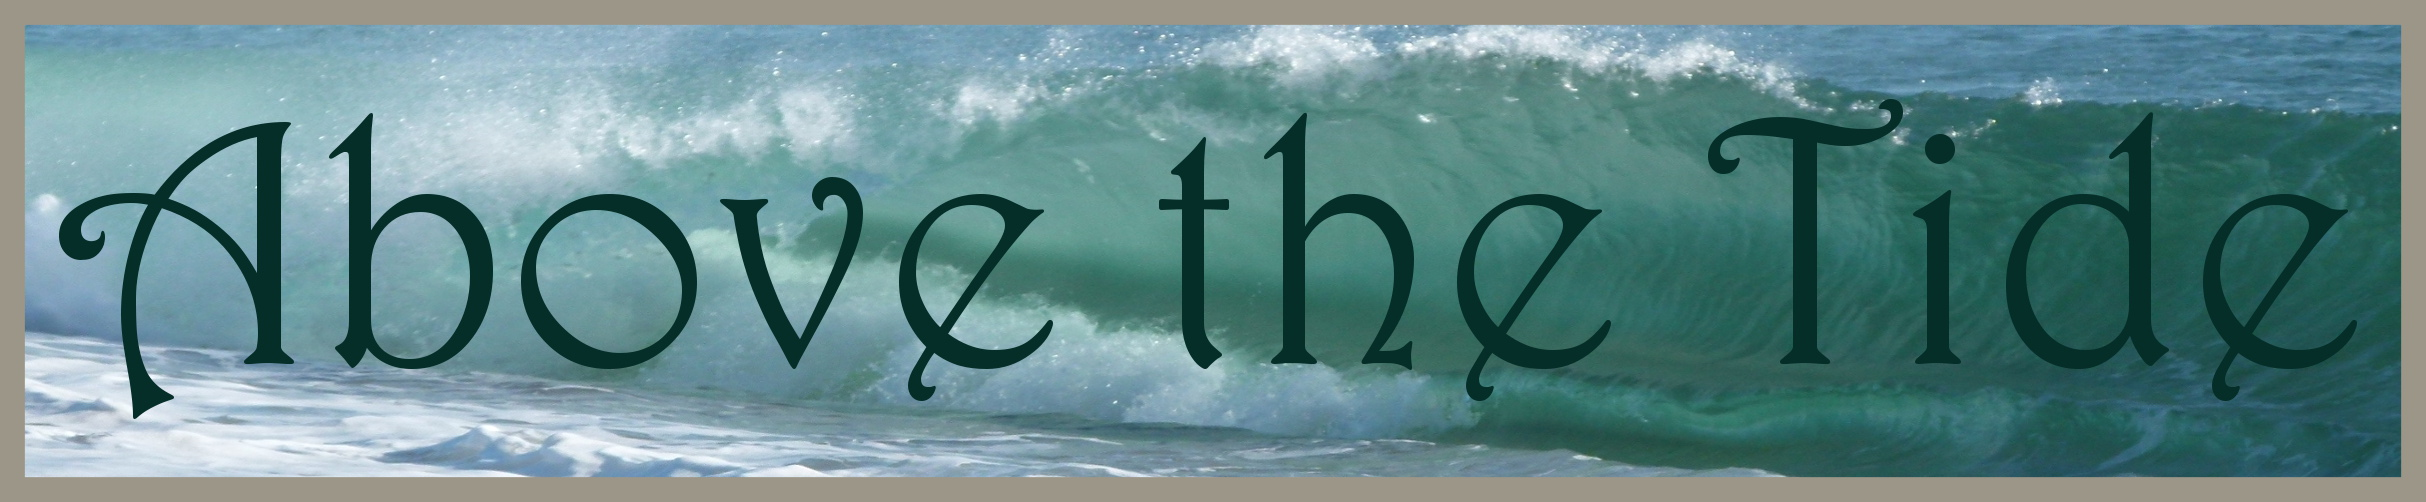 Above the Tide Banner